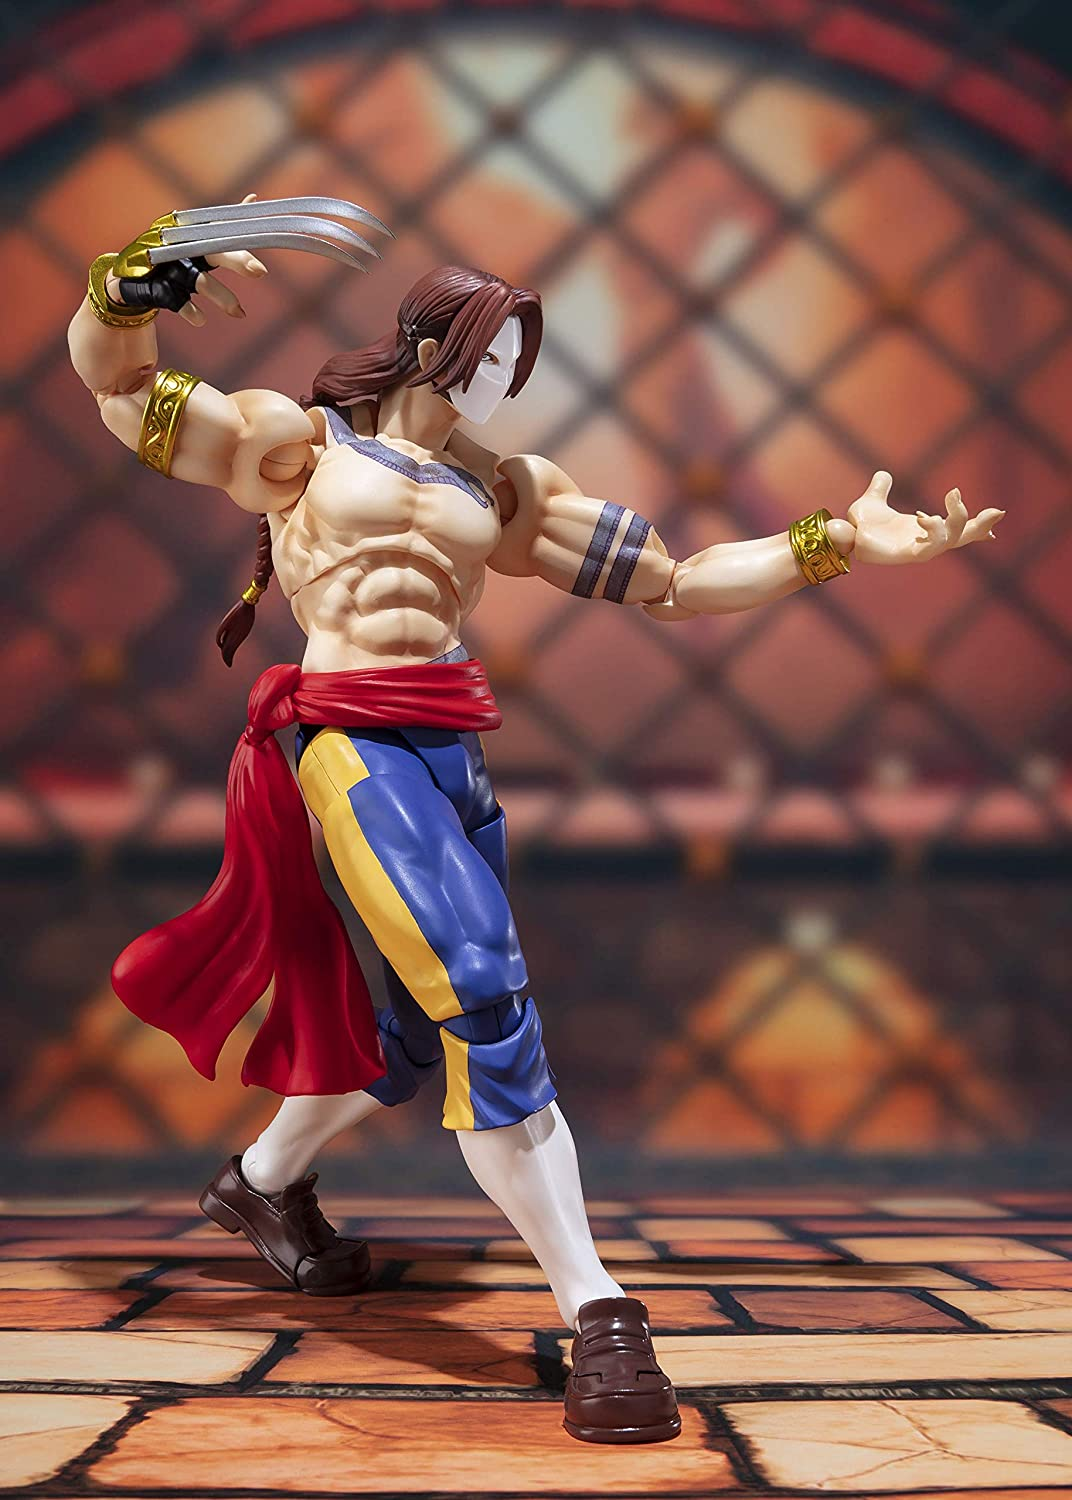 Figuarts Vega Street Fighter Action Figure Tamashii Nations Bandai S.H